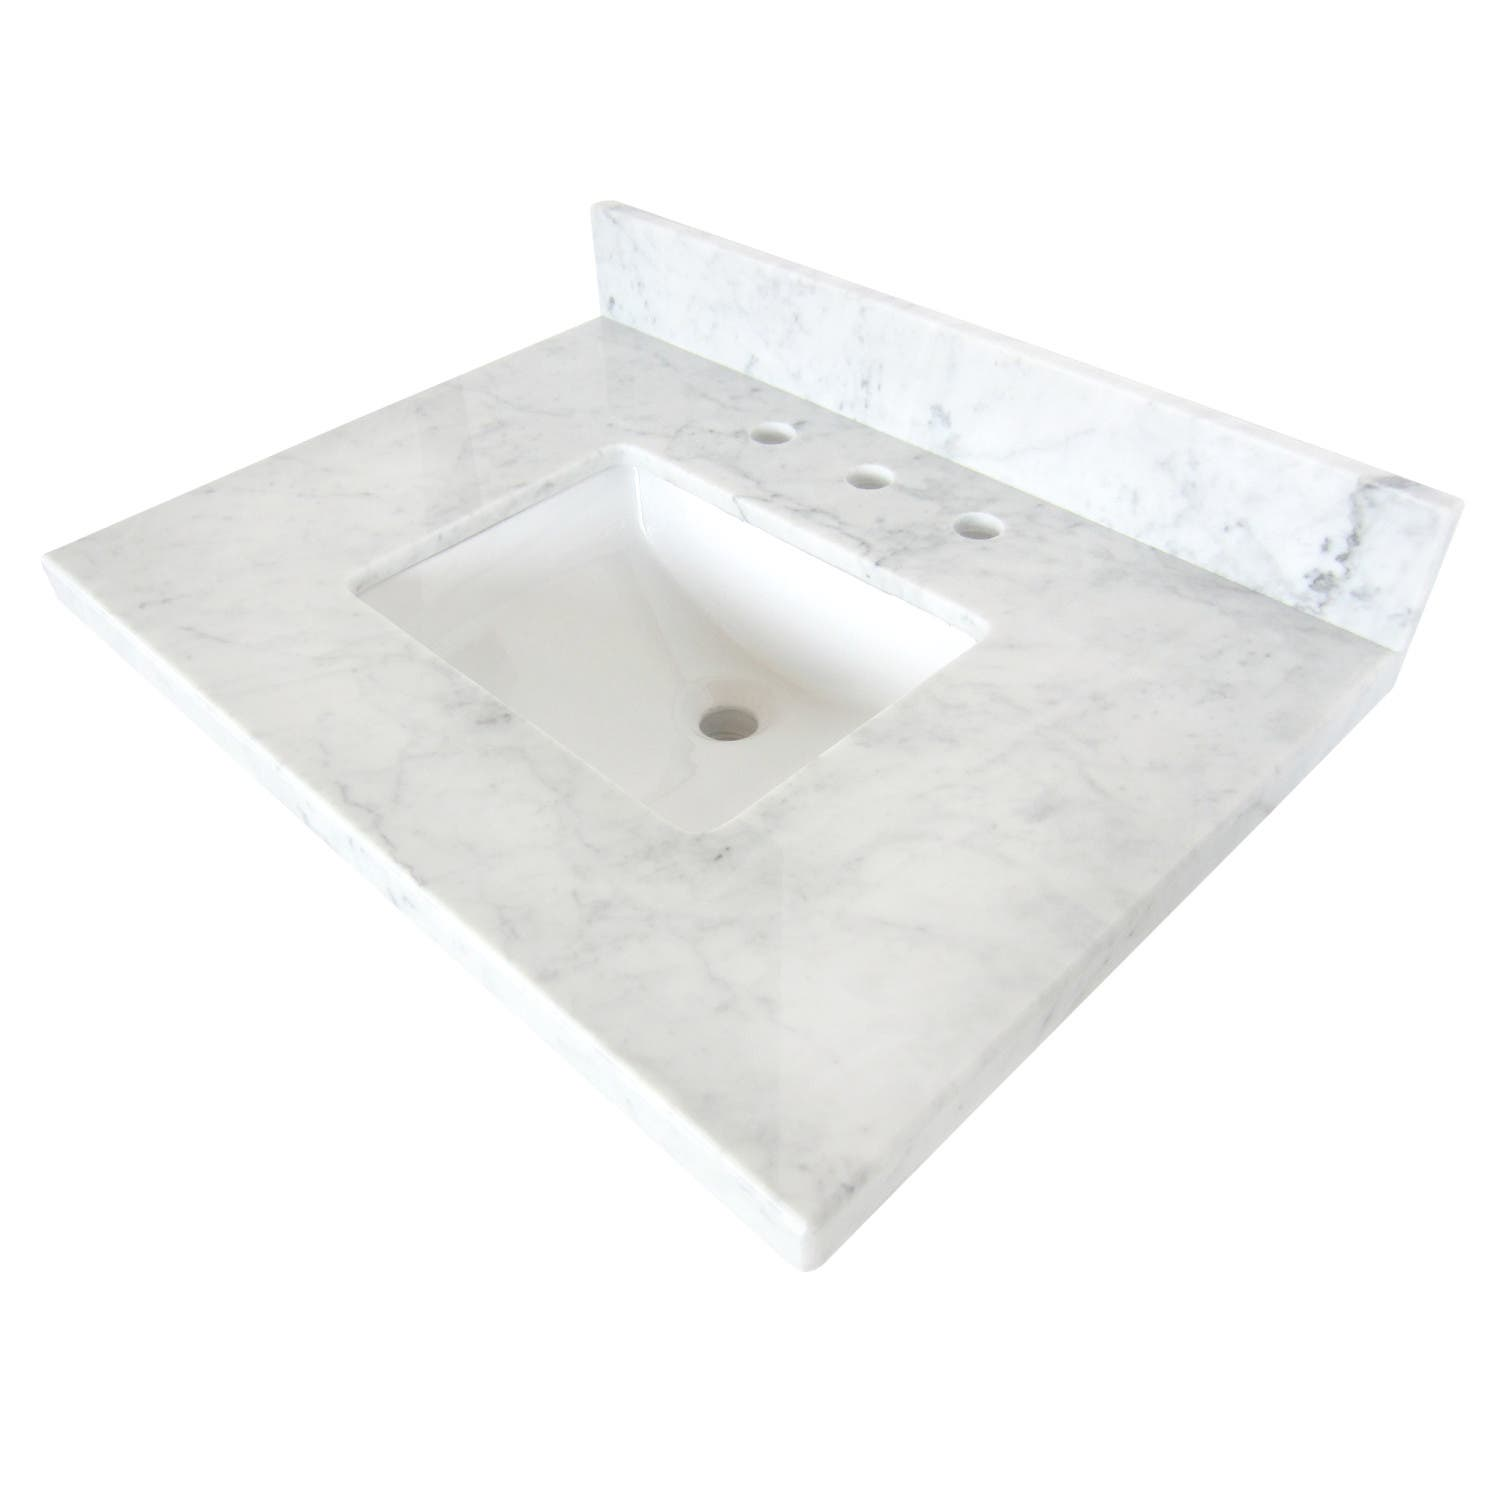 Square Undermount Bathroom Sinks on square bathroom sinks with faucet, kohler drop-in sinks, square above counter sinks, blanco undermount granite composite sinks, types of undermount sinks, square stainless sink, undermount kitchen sinks, square modern bathroom sinks, drop in stainless steel kitchen sinks, solid surface undermount sinks, 16-gauge stainless steel sinks, ceramic kitchen sinks, solid surface kitchen sinks, square porcelain sink, small kitchen sinks, double kitchen sinks, square copper bathroom sink, square sink vanities, american standard kitchen sinks, very small undermount sinks,